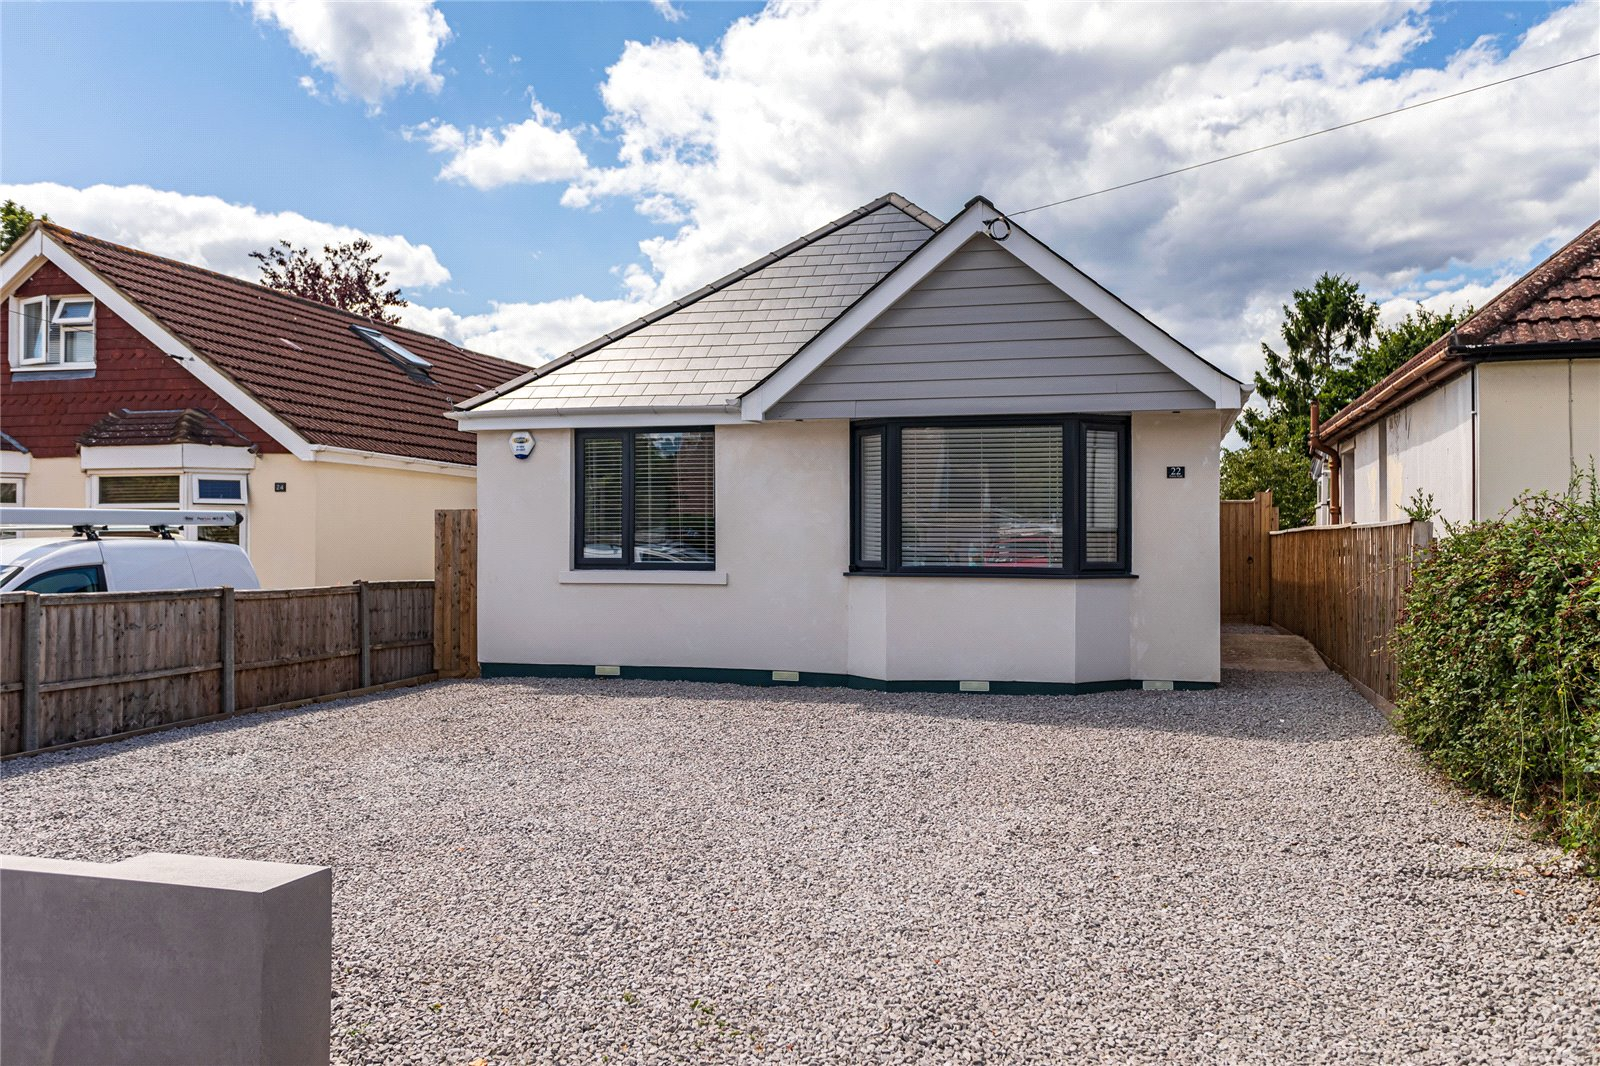 3 bed bungalow for sale in Pottery Road, Whitecliff, BH14